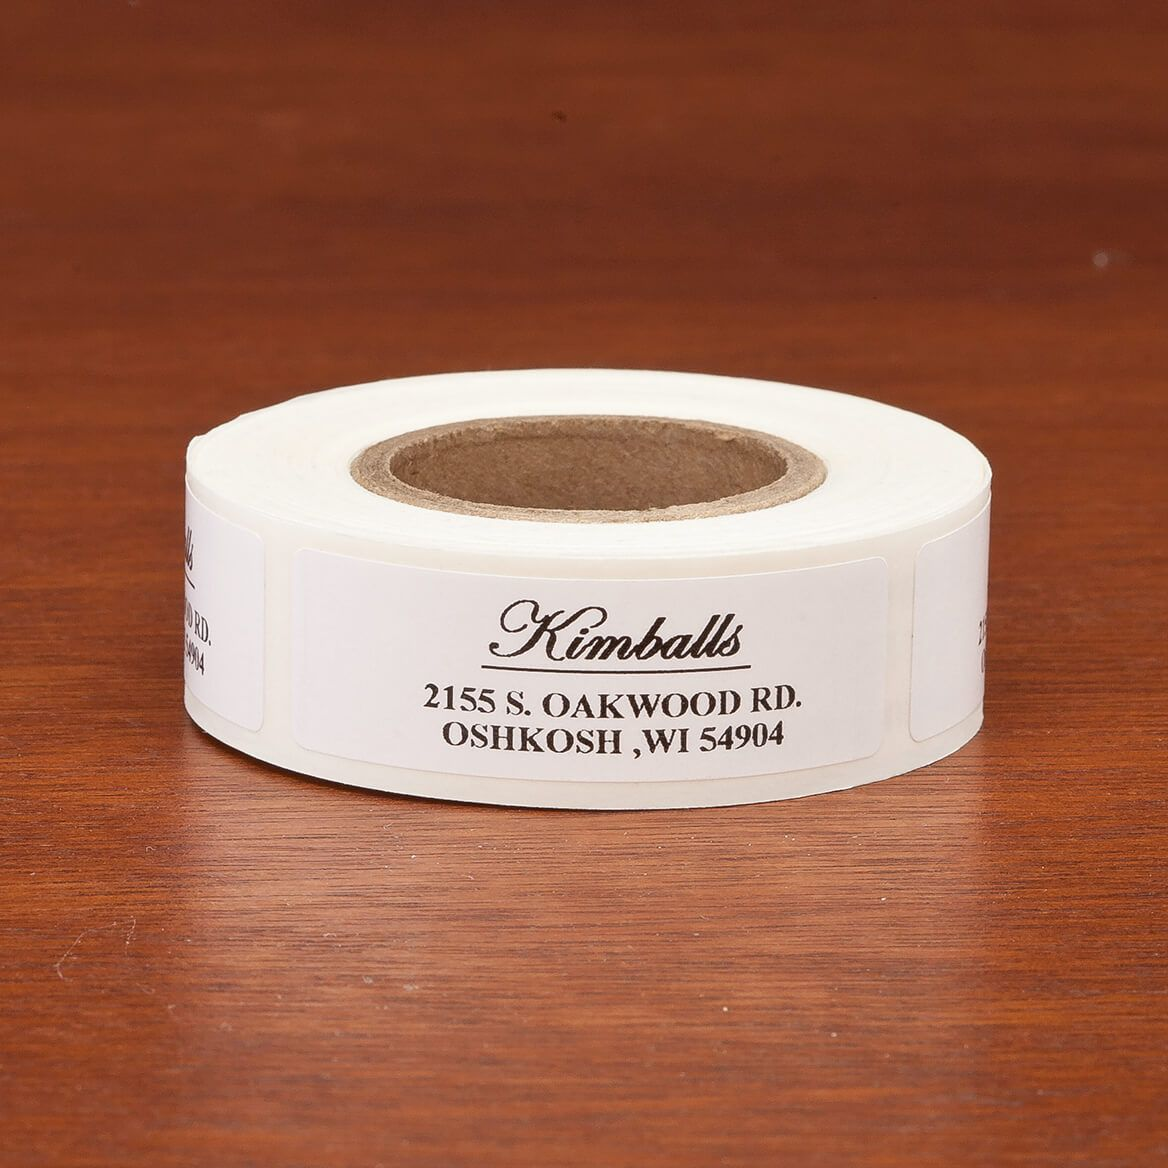 Personalized Elegant and Centered Address Labels, 200-351399